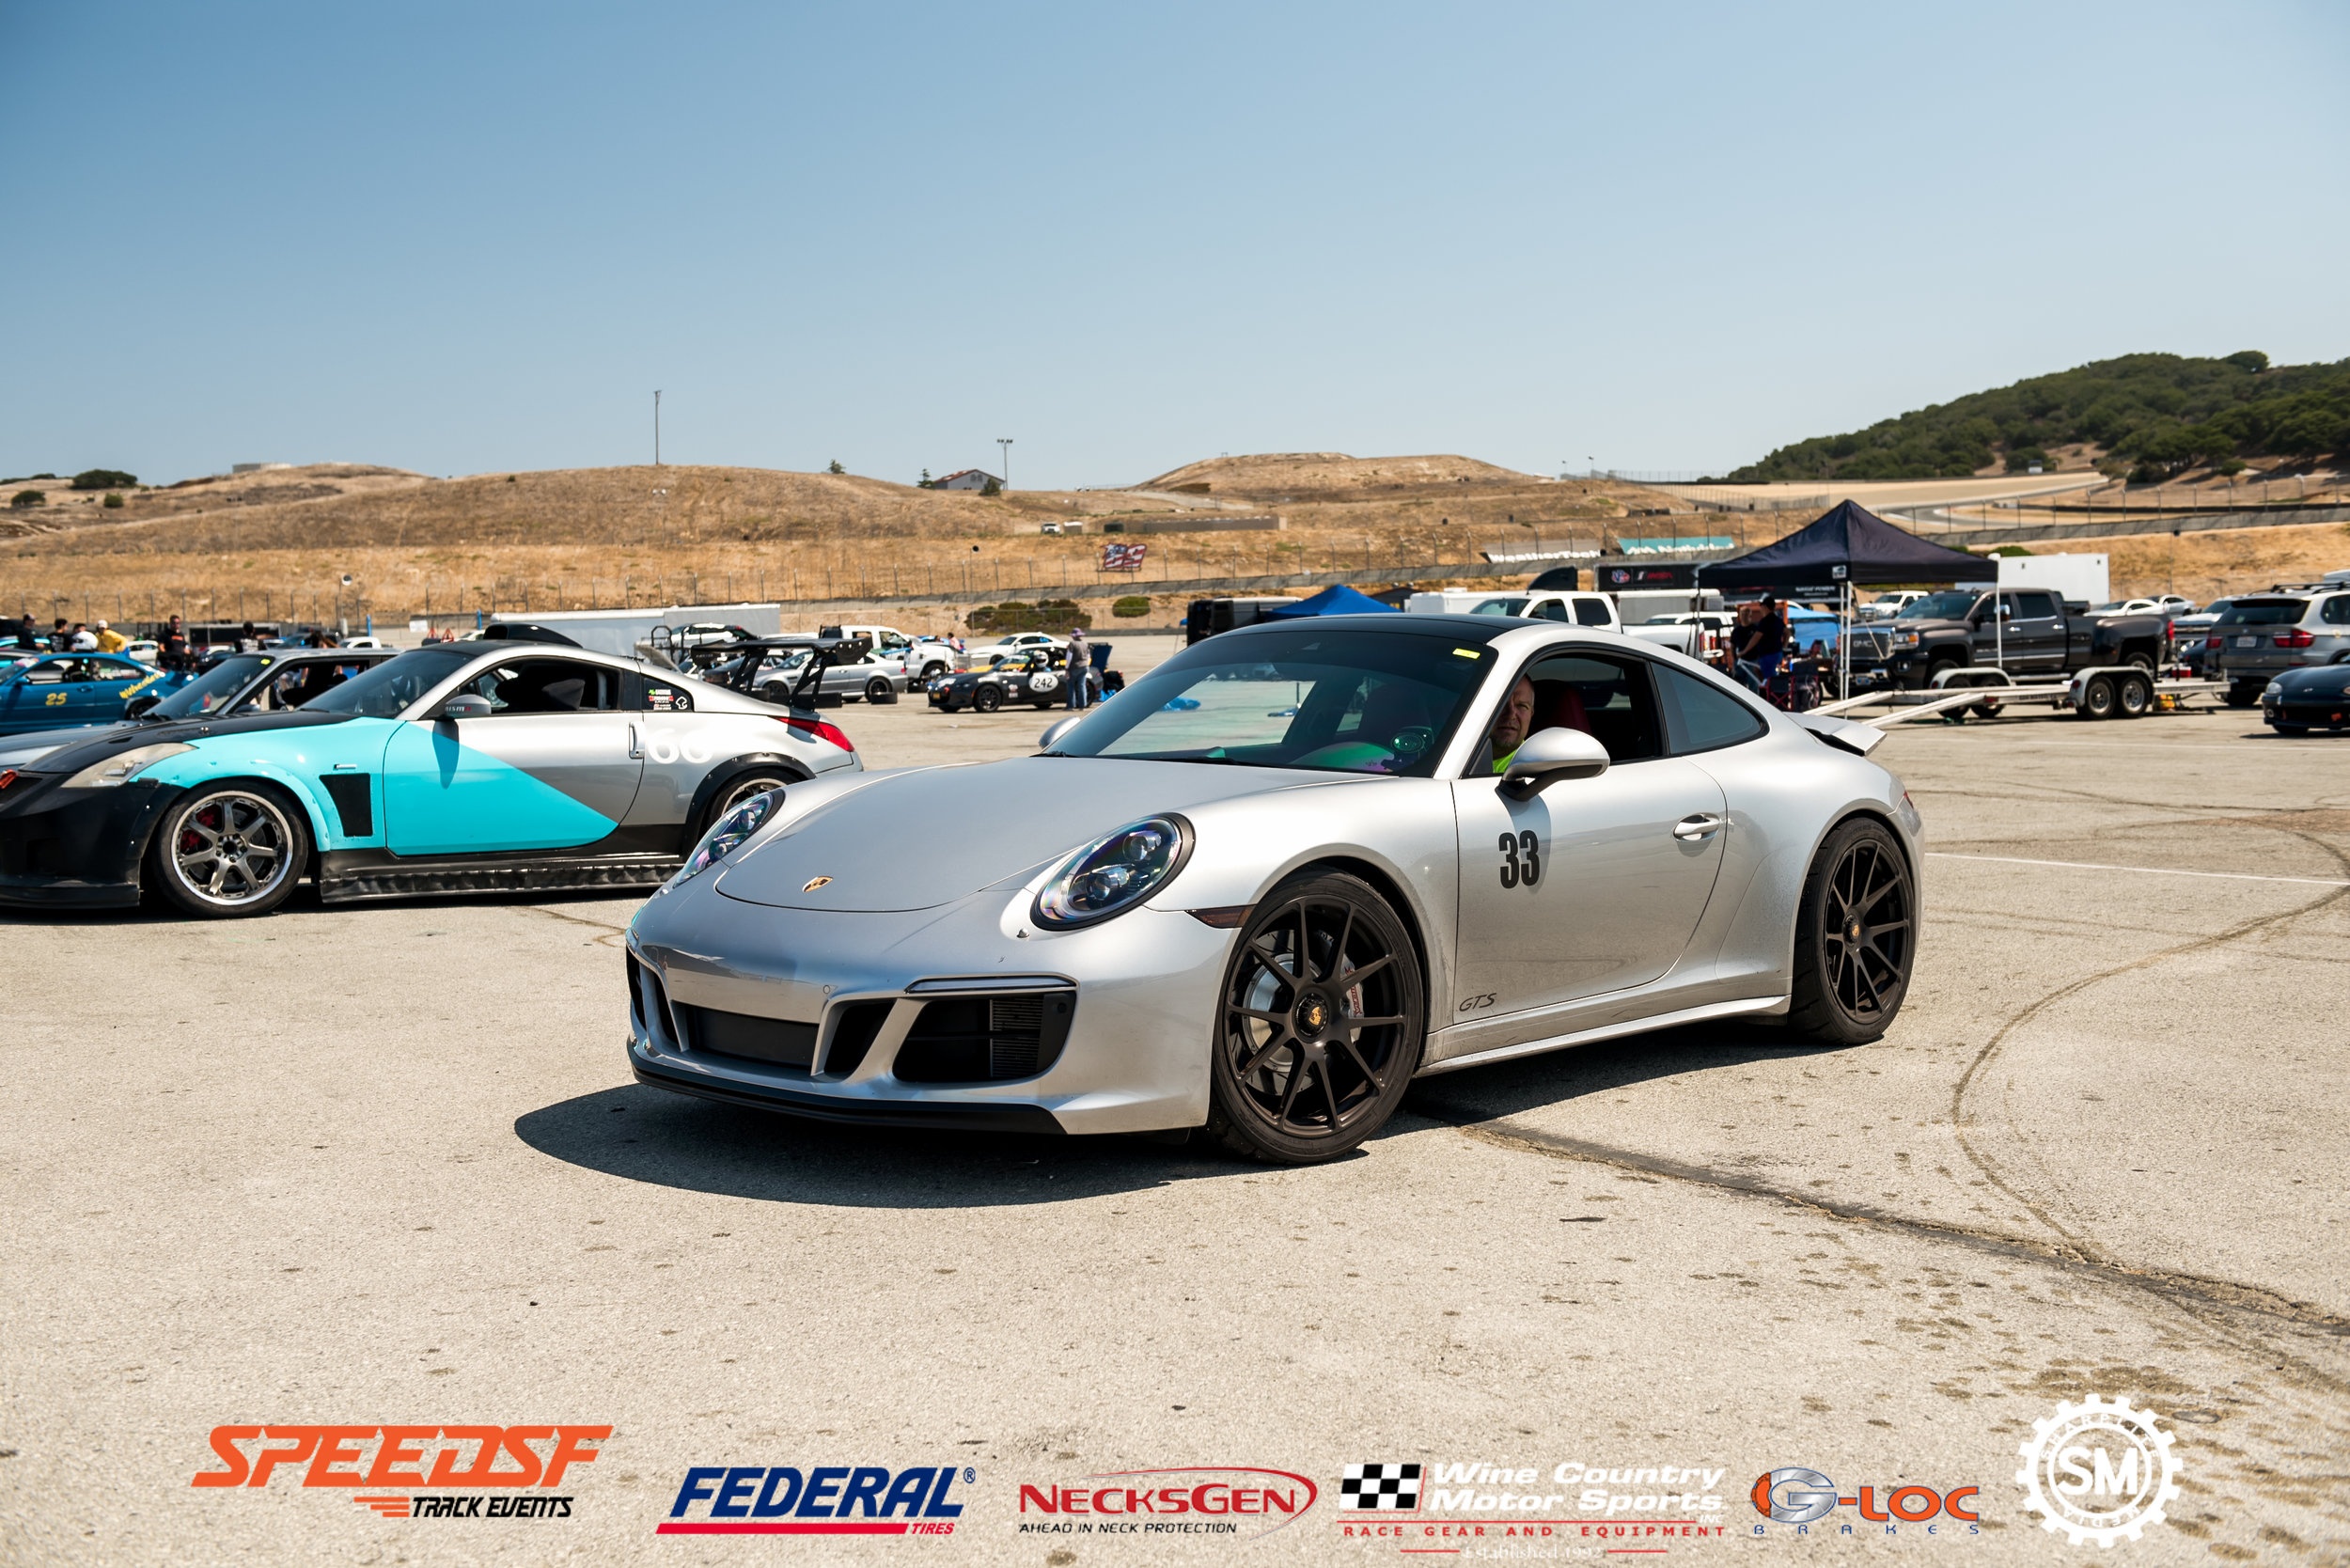 SpeedSF Paddock Sunday-34.jpg